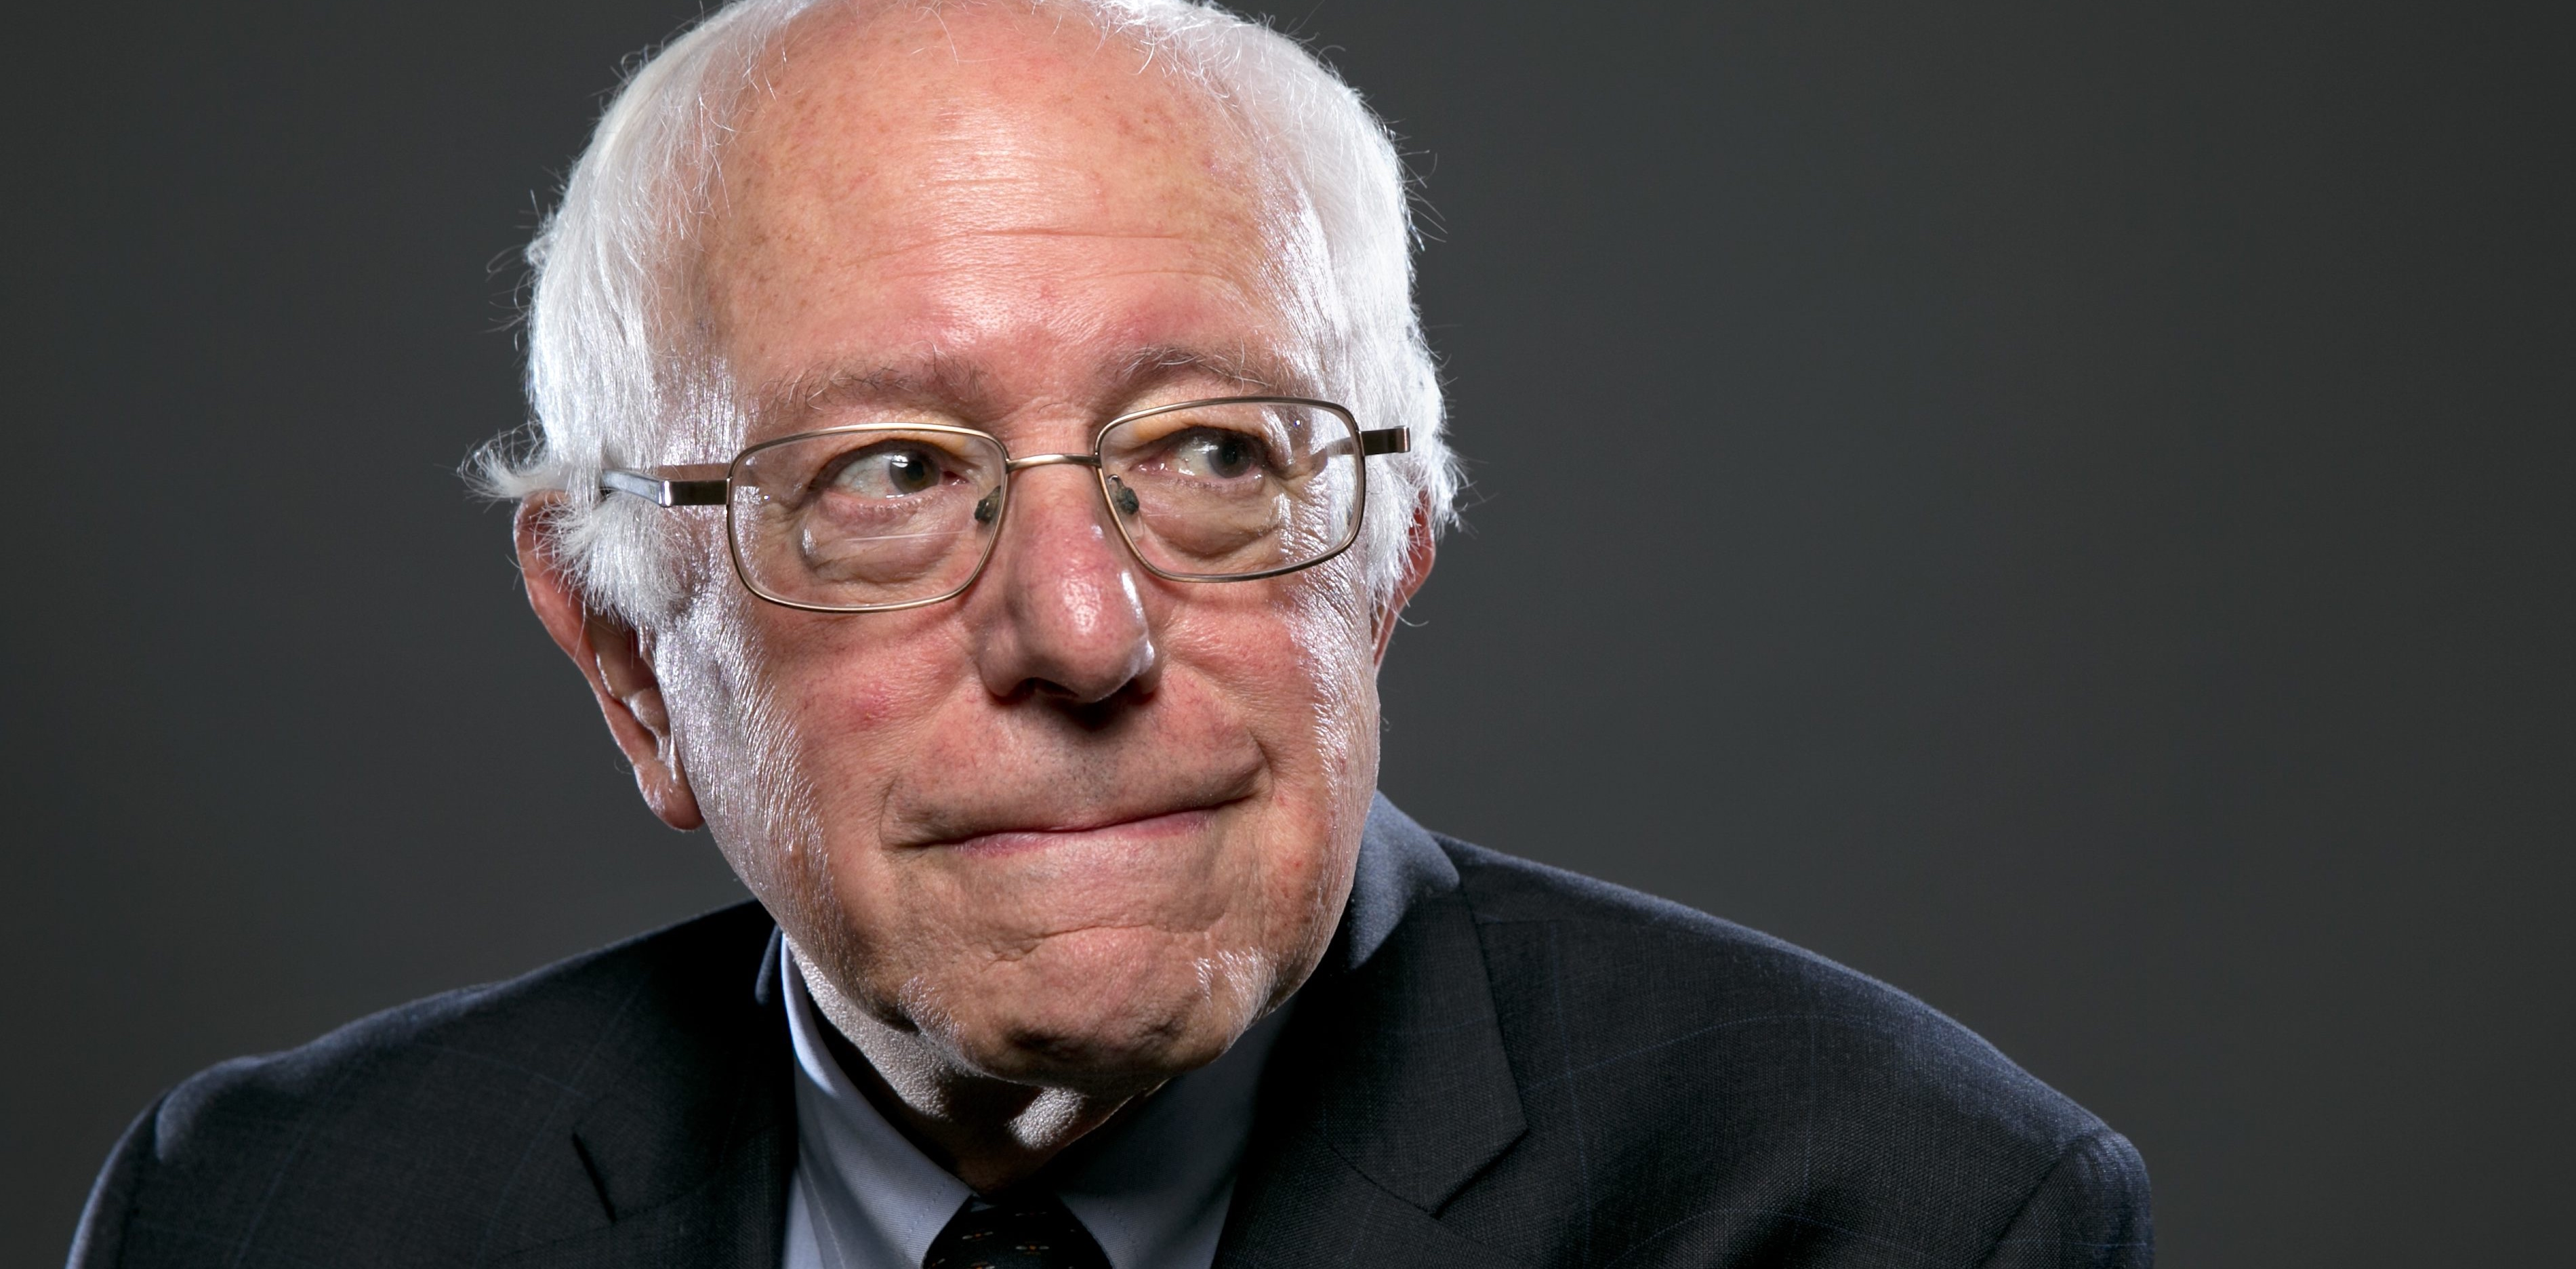 In 2006, Bernie Sanders rejected the Democratic nomination for senator of Vermont because he thought the party was